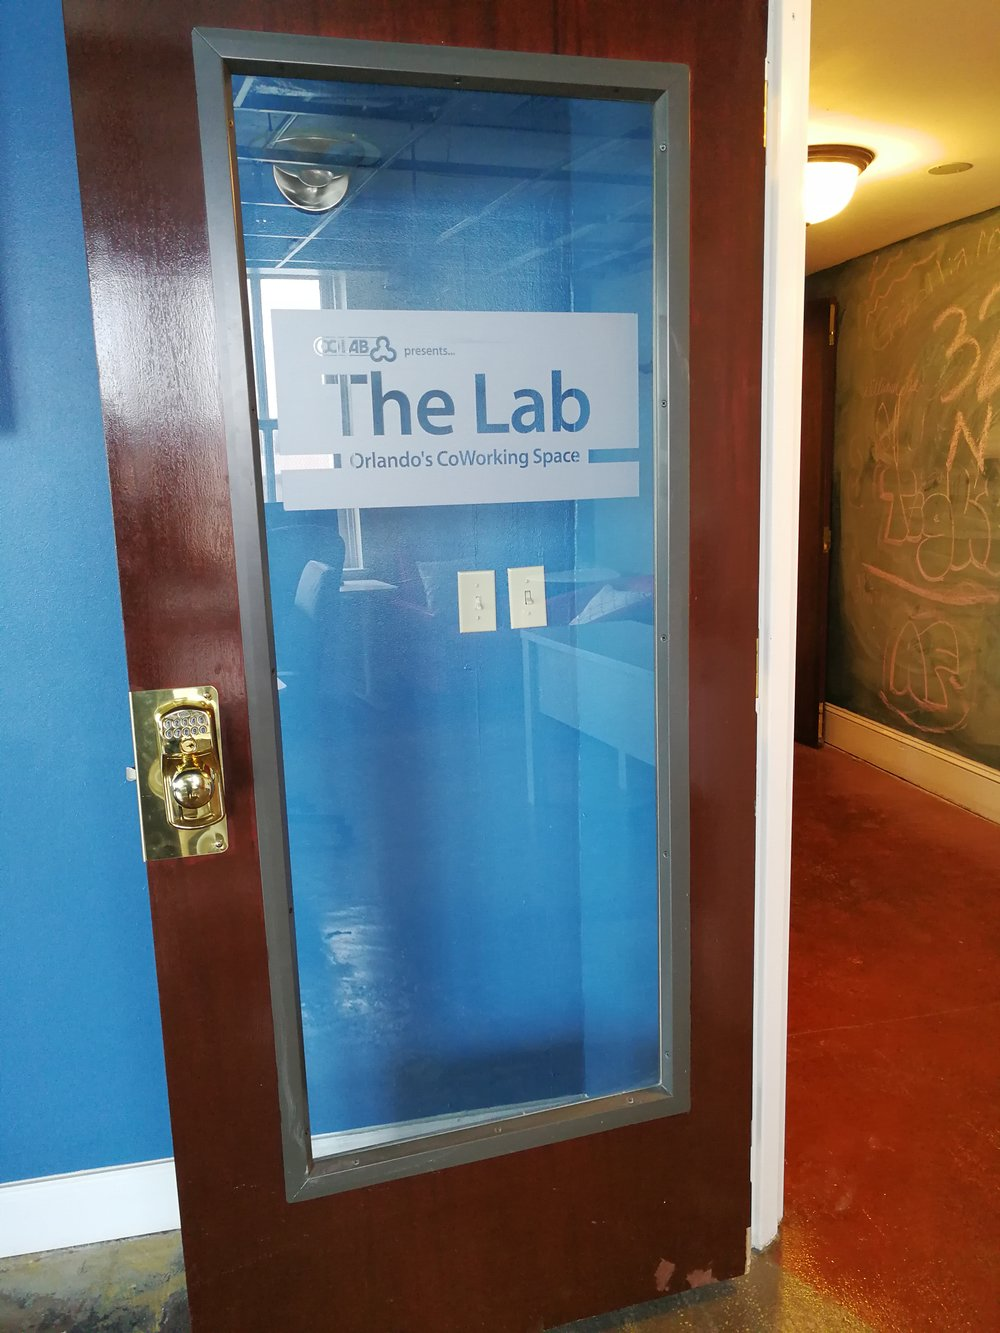 Welcome to The Lab - Orlando's CoWorking Space